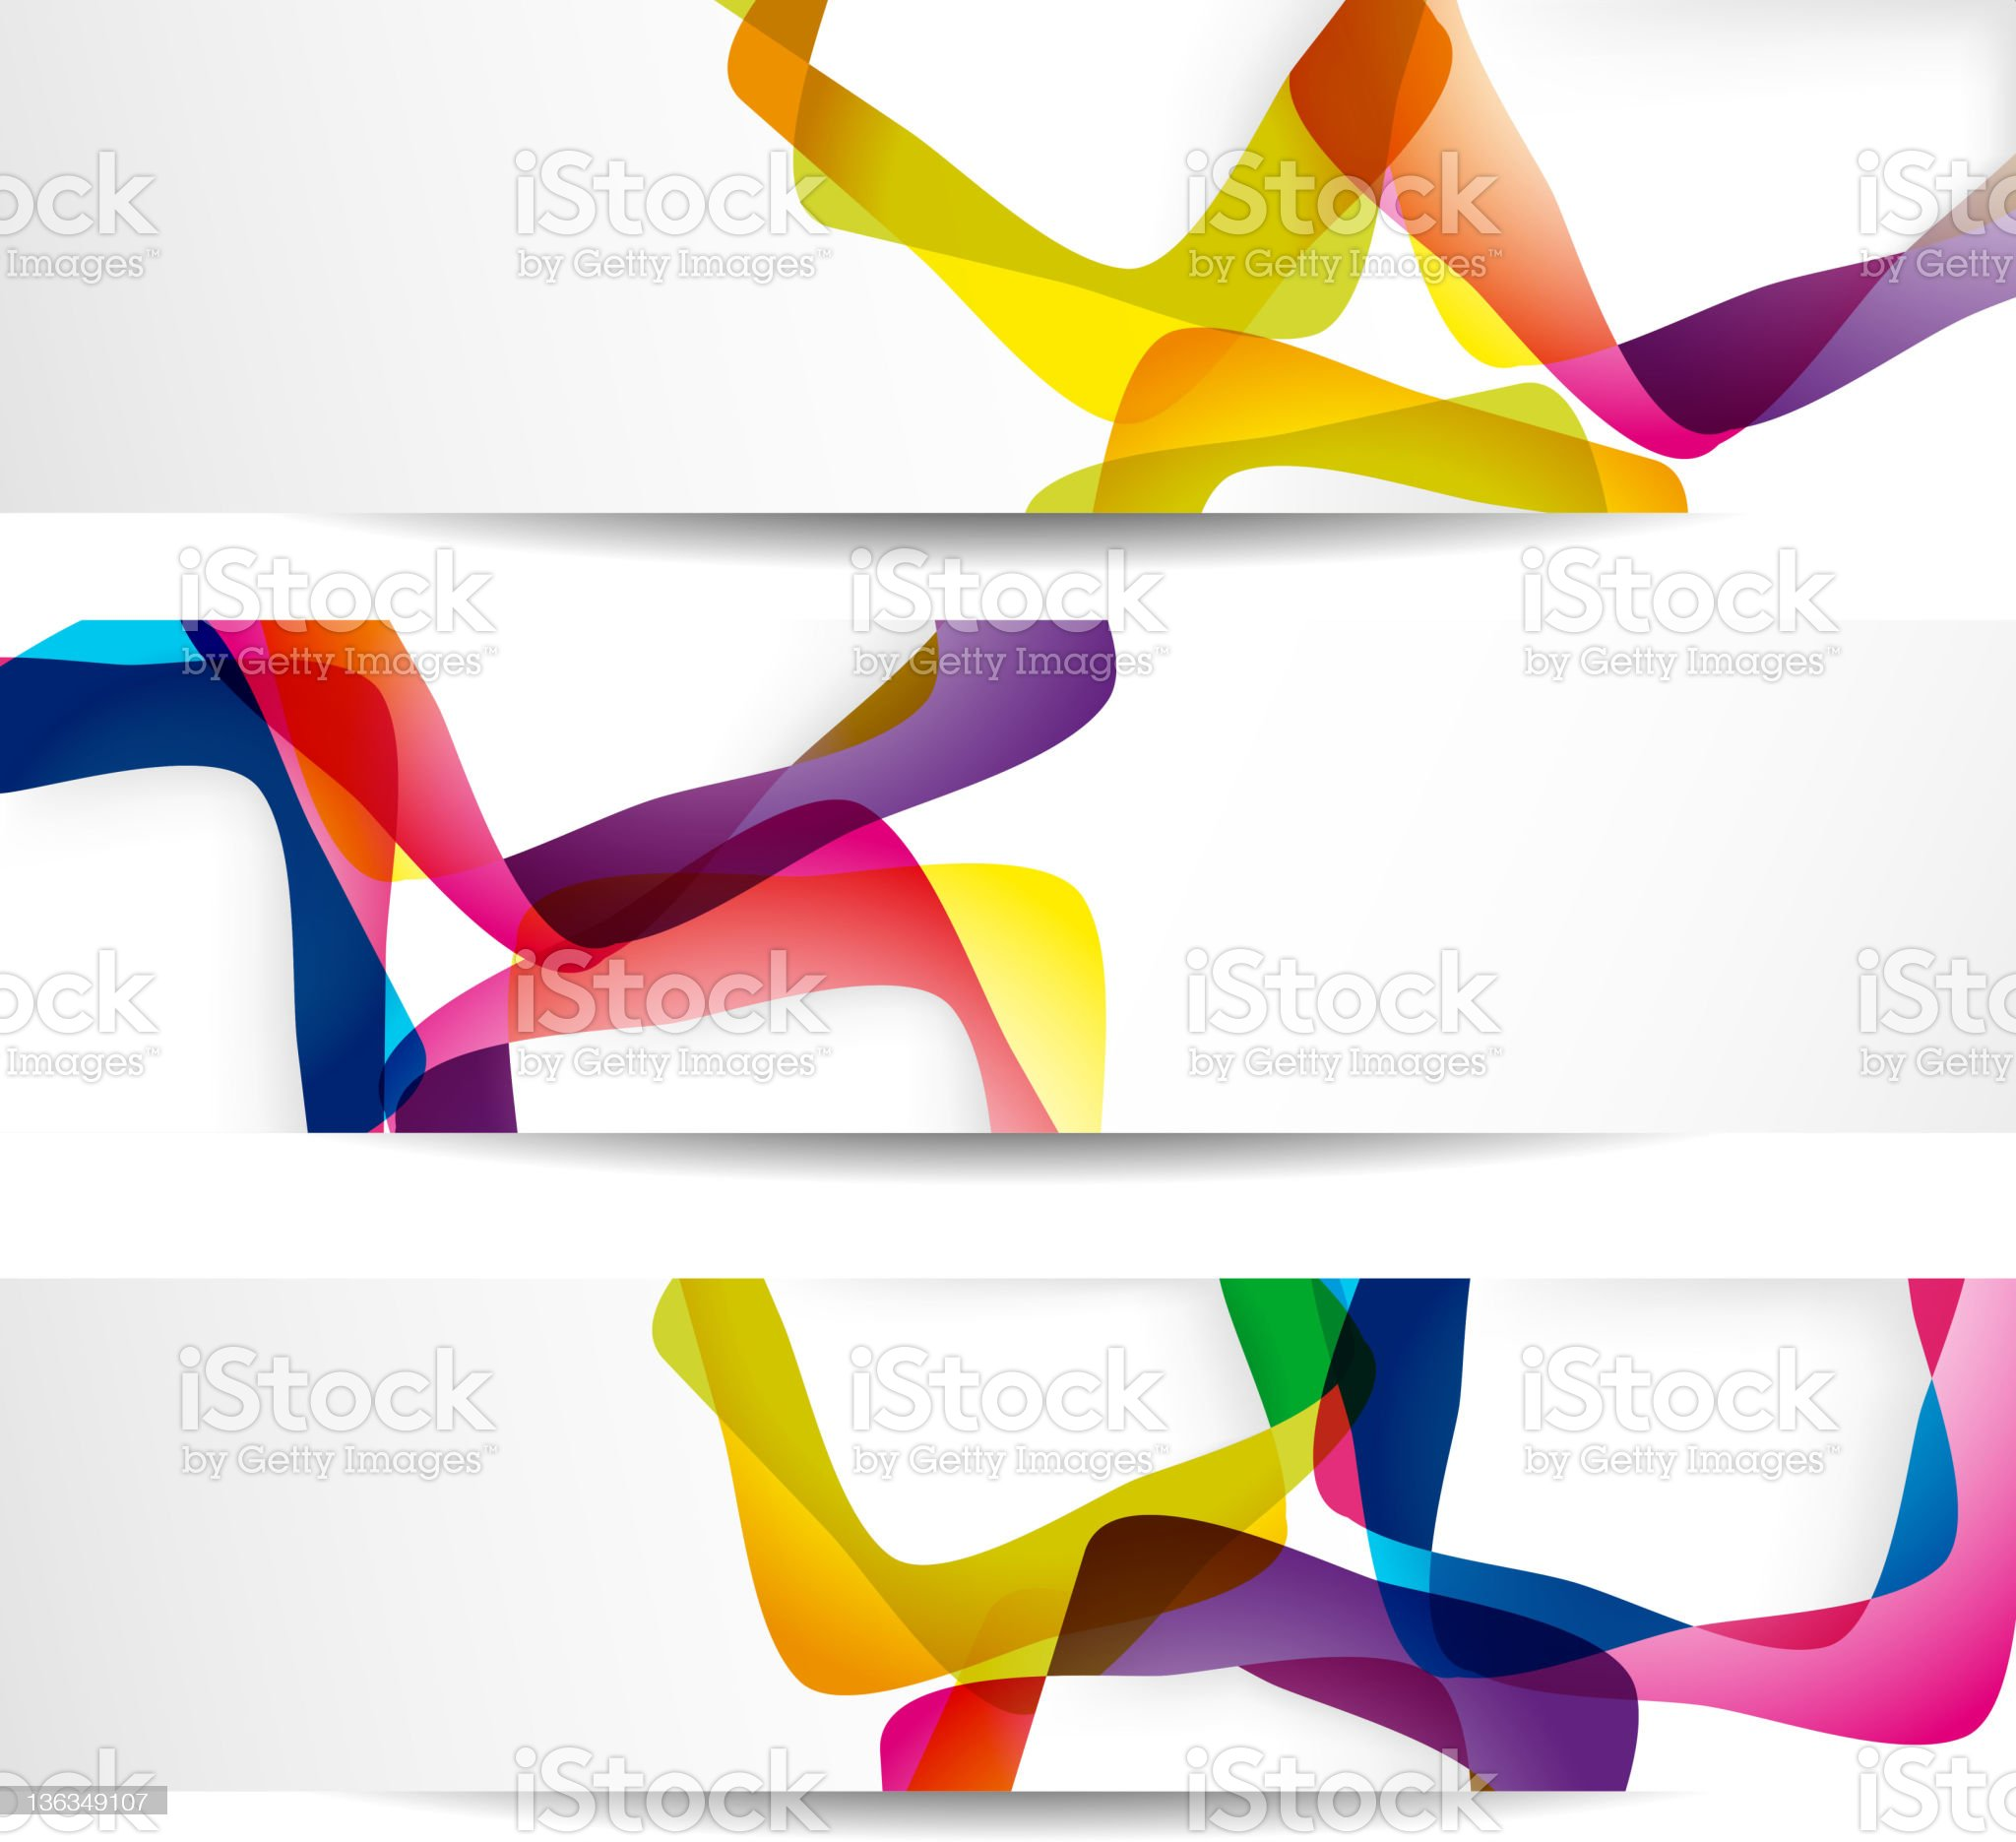 An abstract set of three colorful banners royalty-free stock vector art